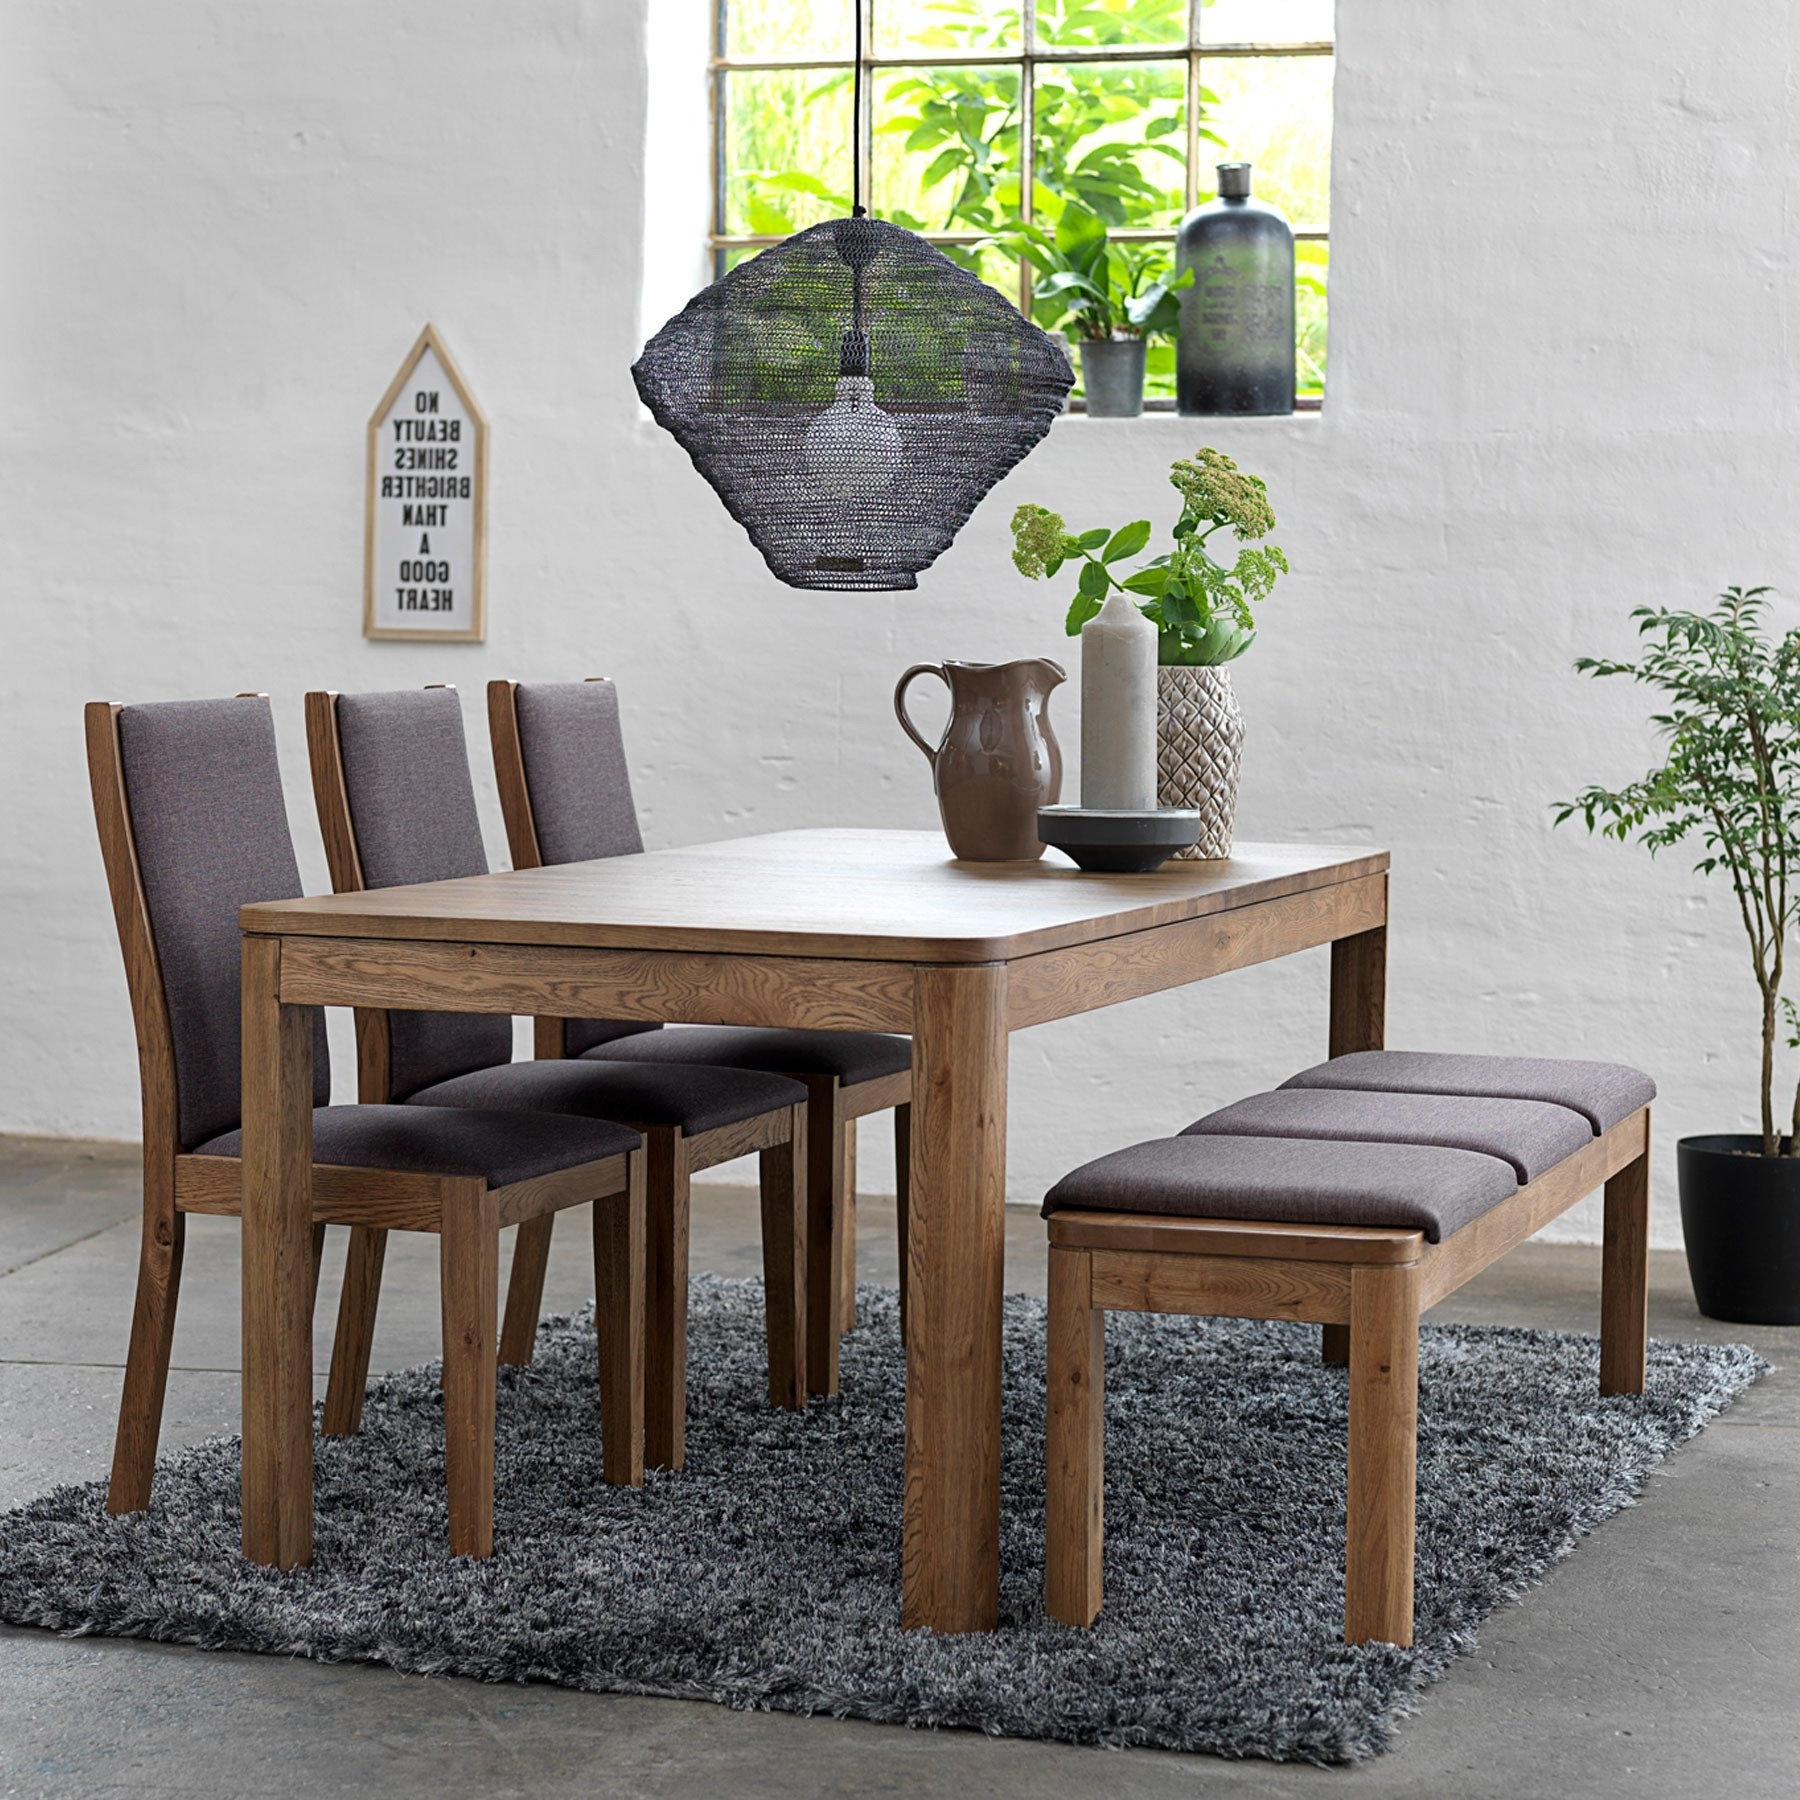 Rustic Country 8-Seating Casual Dining Tables with Well-known 50+ Dining Table With Bench You'll Love In 2020 - Visual Hunt